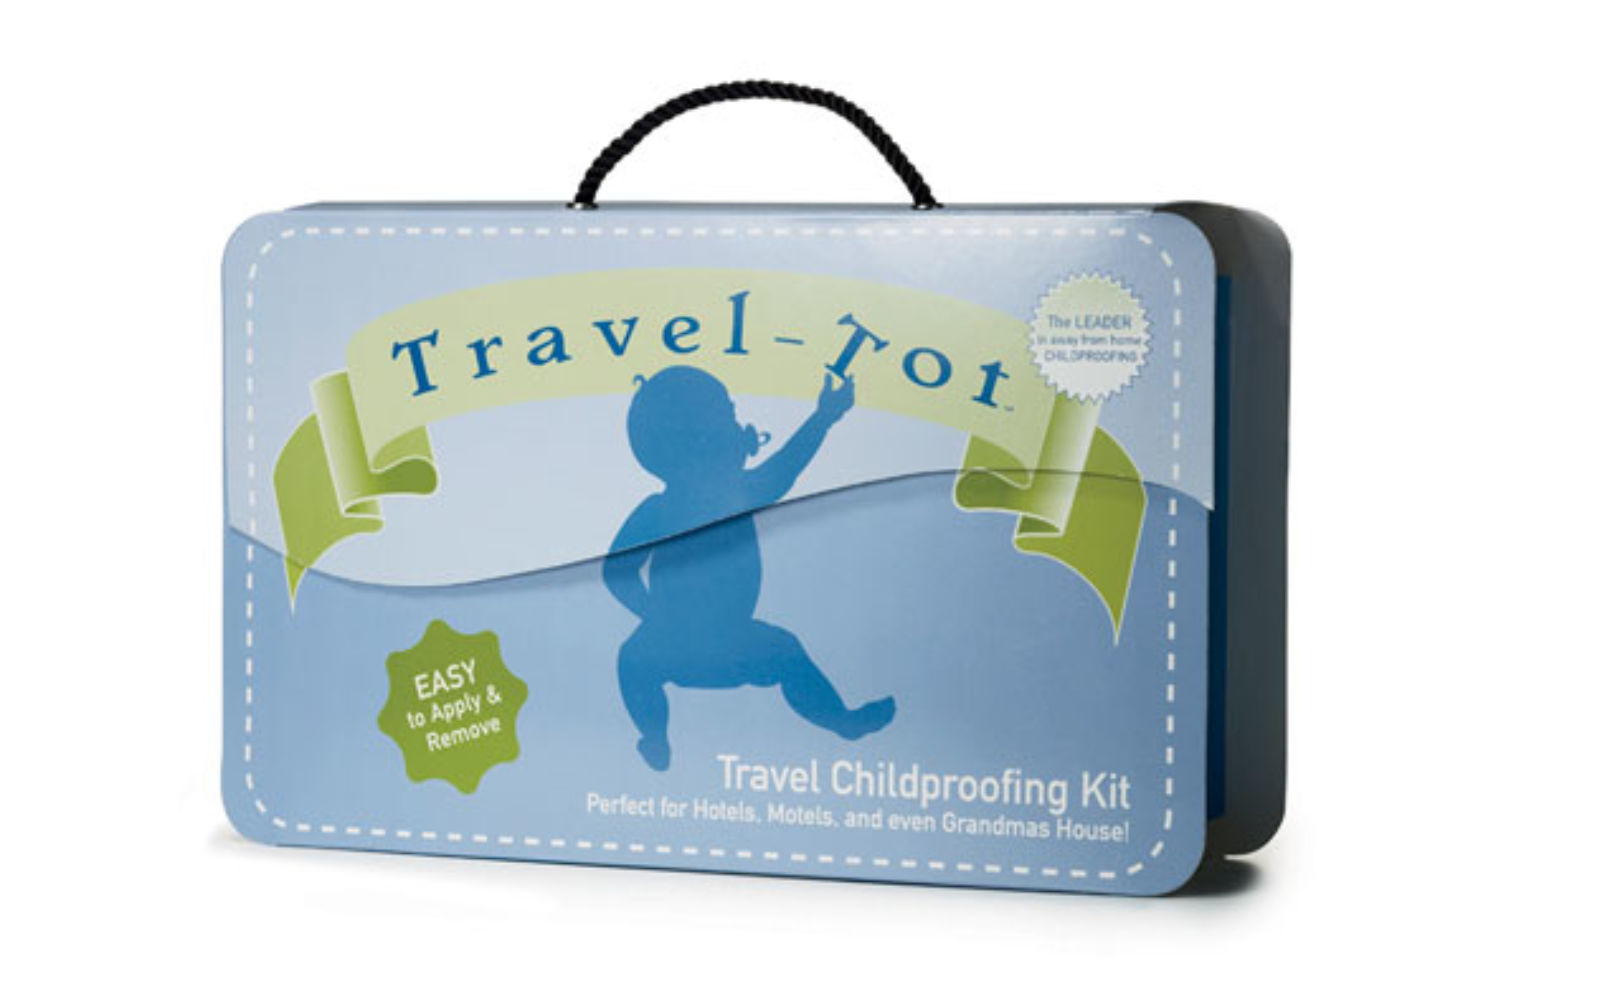 Travel-Tot Childproofing Kit